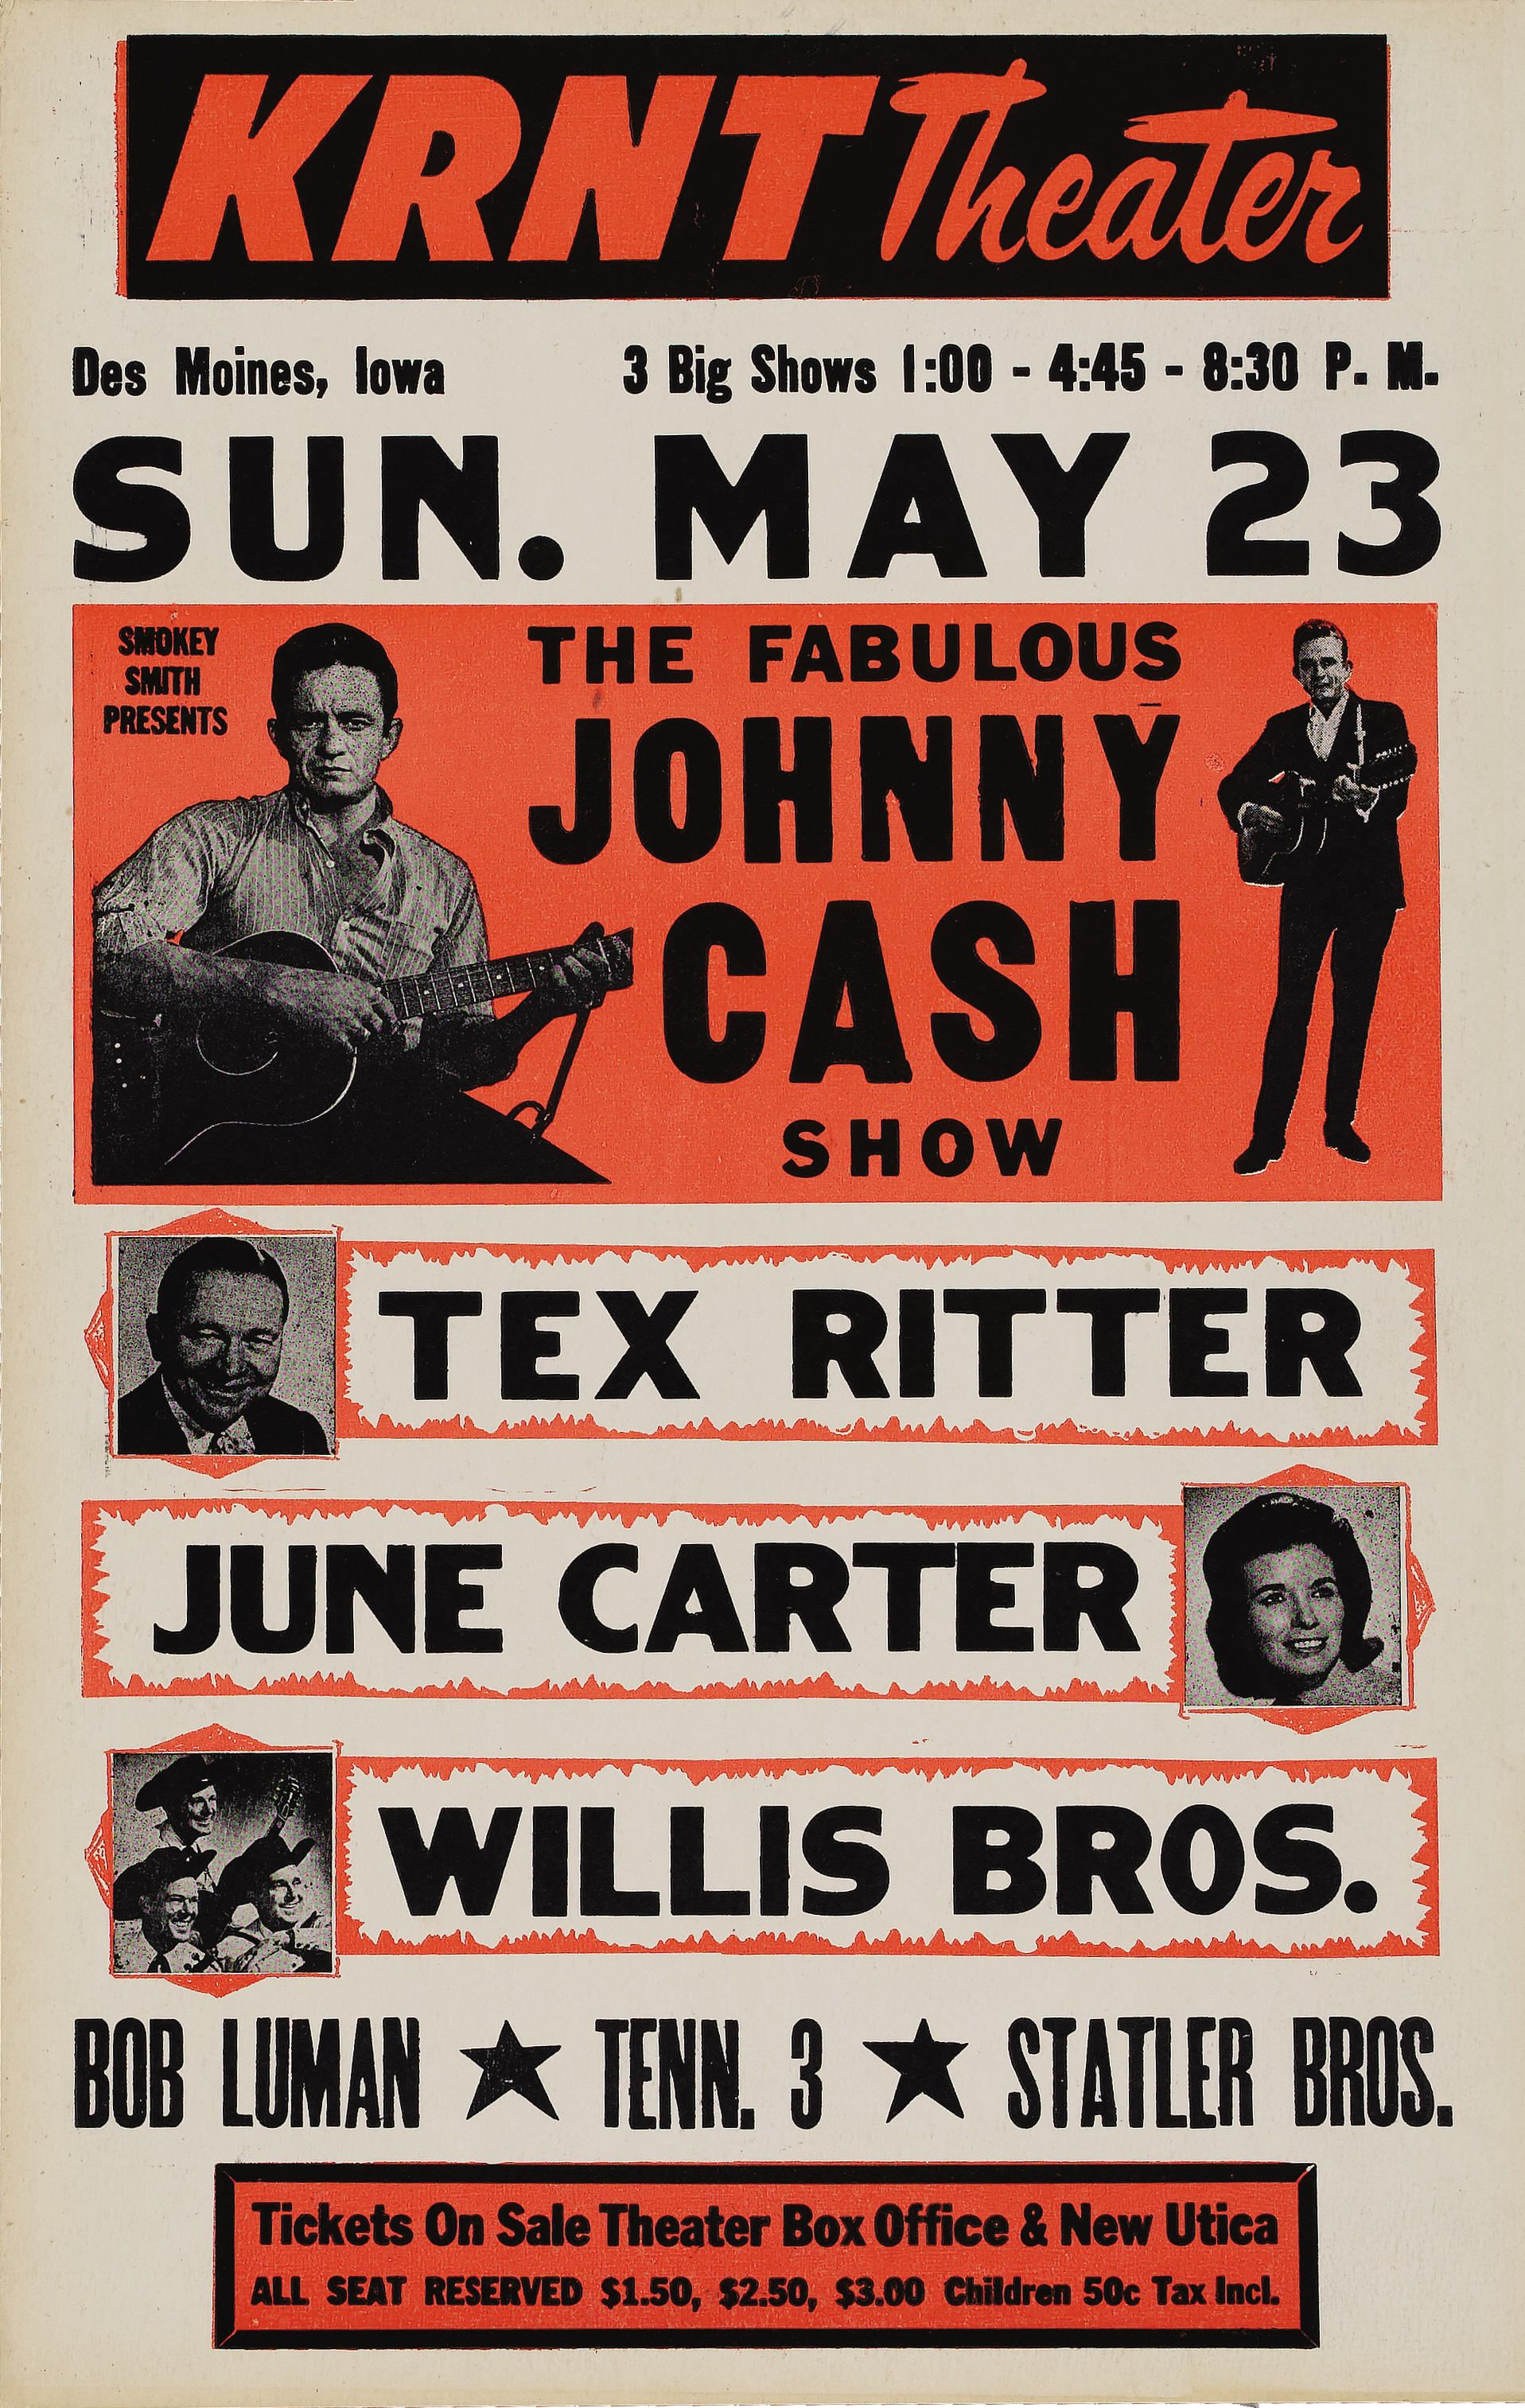 The Fabulous Johnny Cash Show Poster Typehunter Johnny Cash Show Johnny Cash Concert Posters